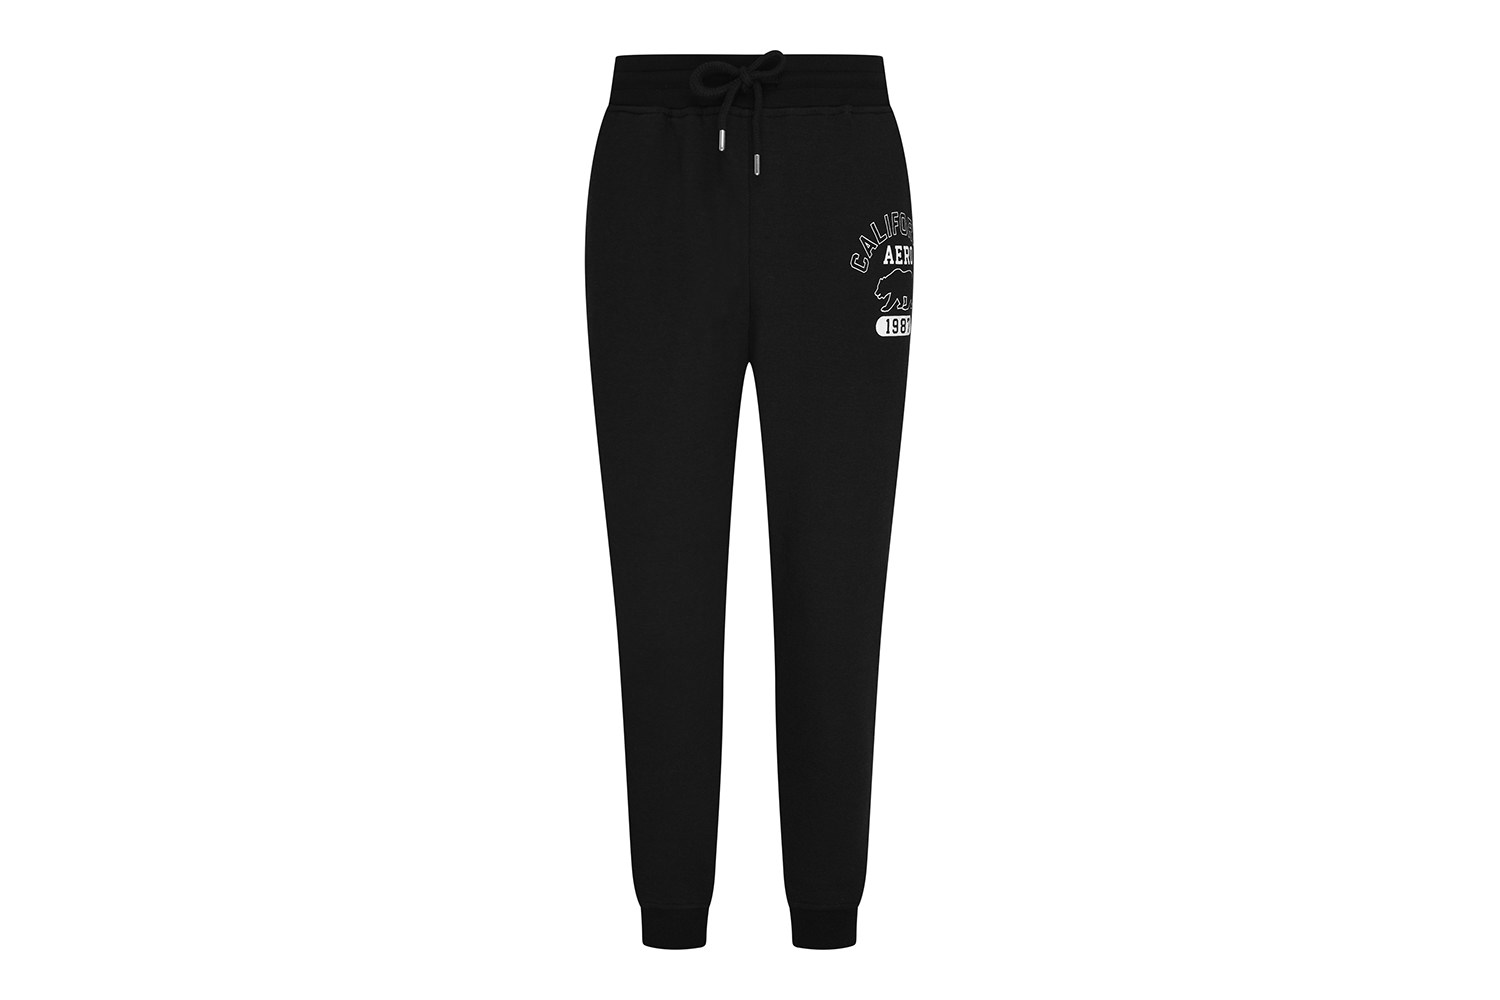 Joggers-Ghost-Mannequin-ecommerce-photography-london